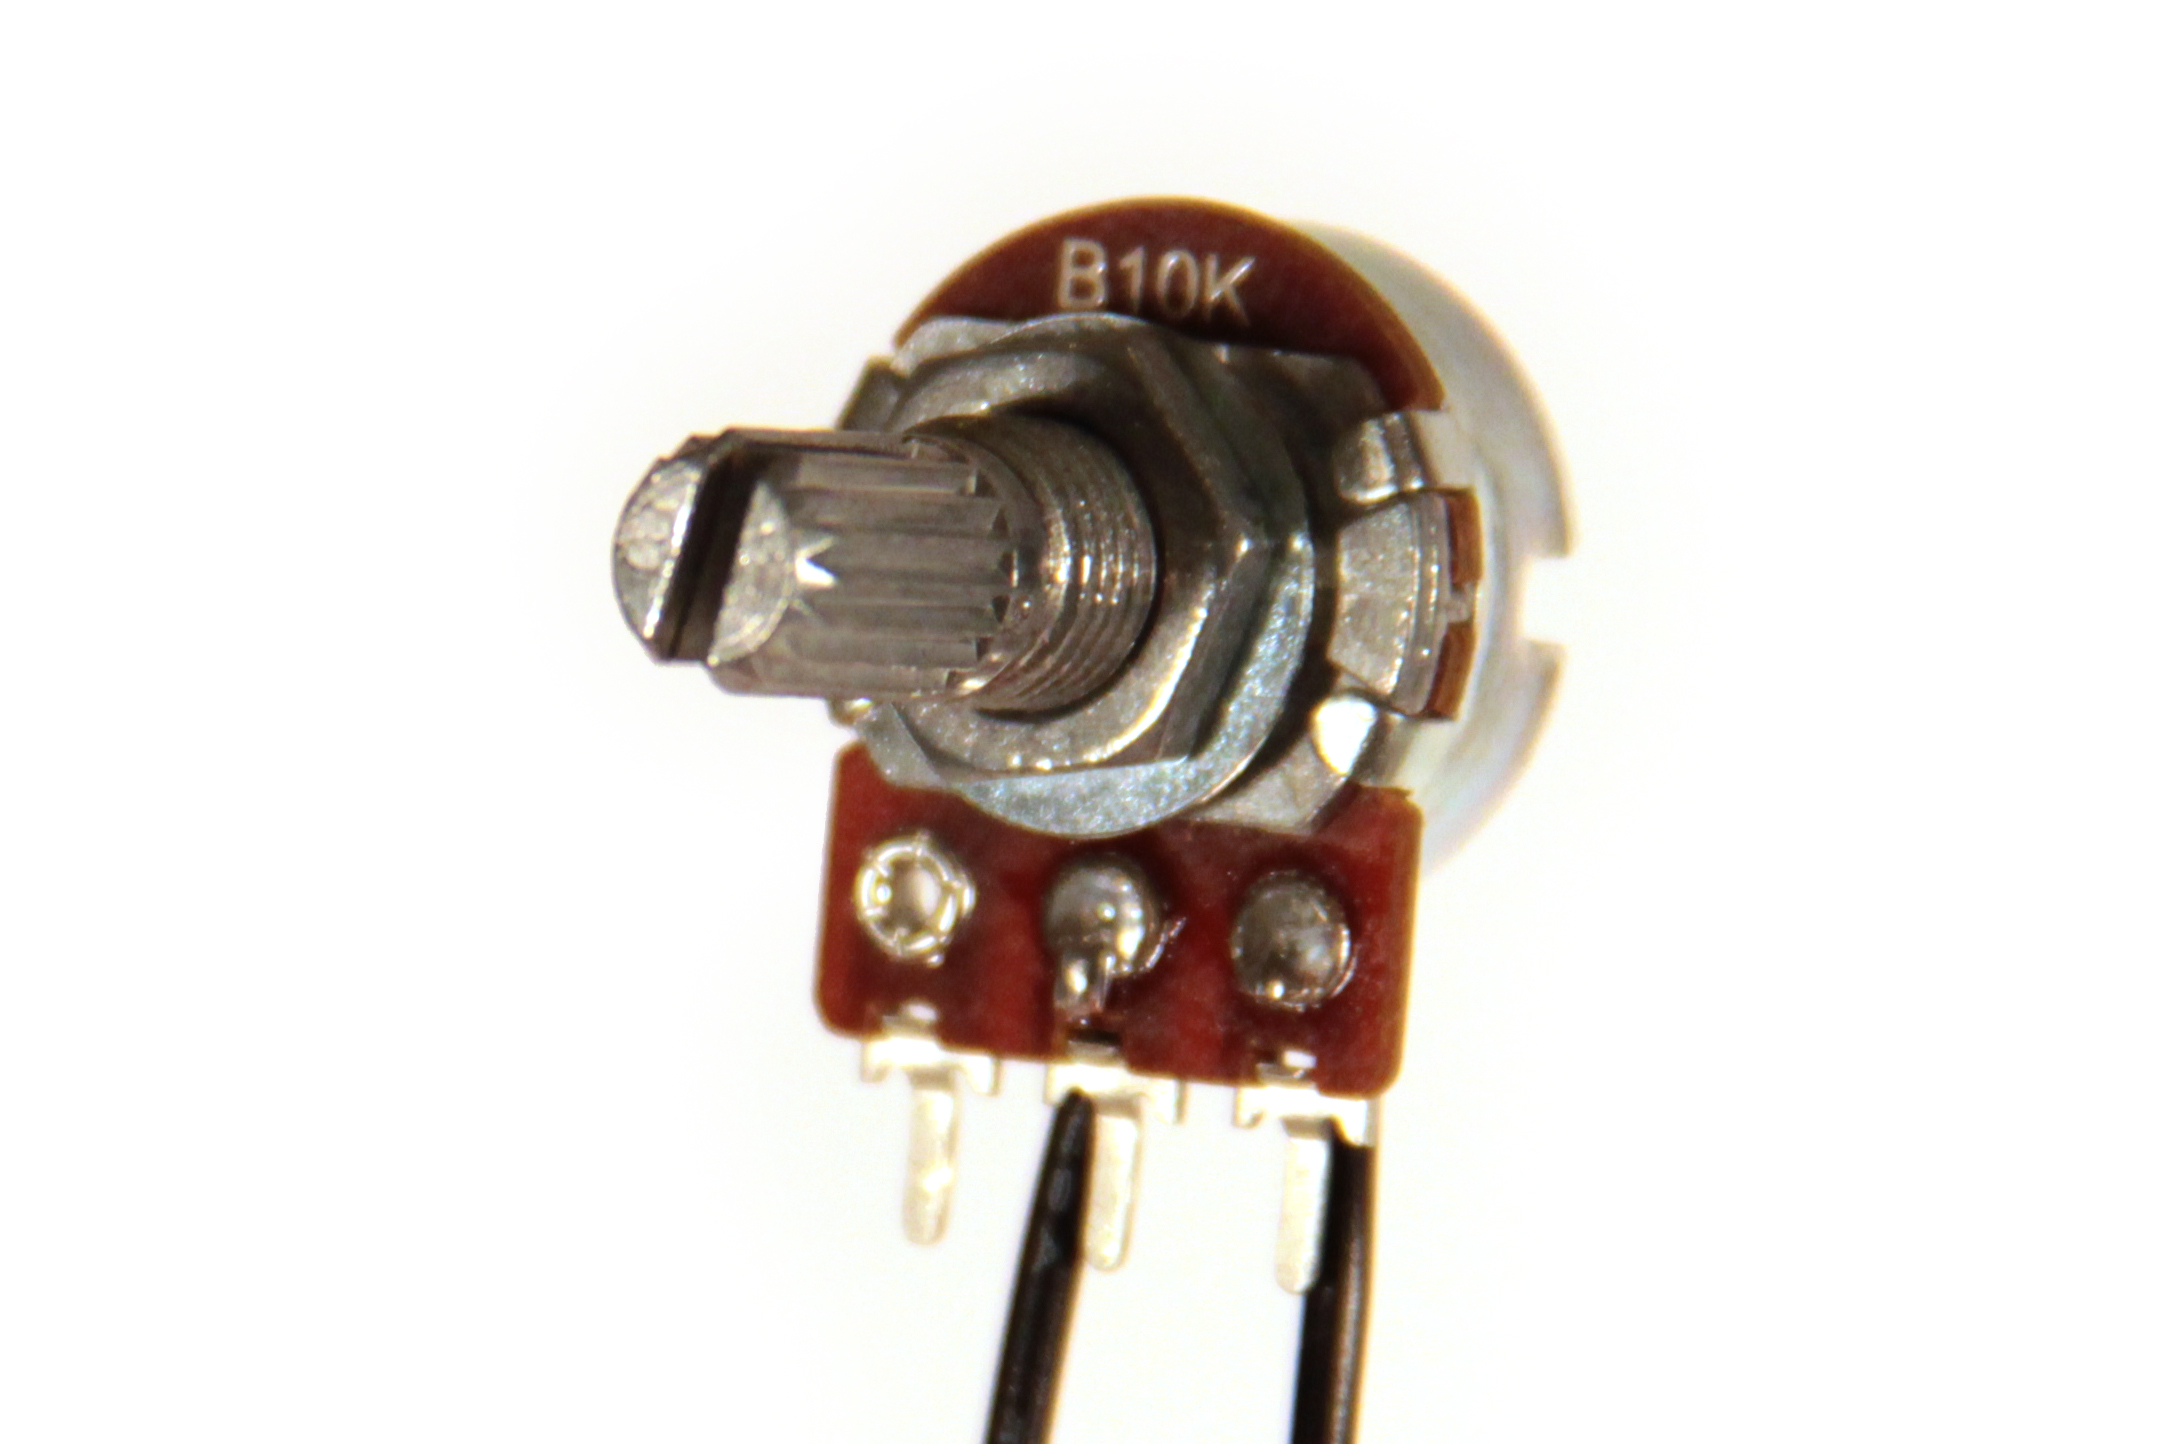 wire a potentiometer as a variable resistorPotentiometer Wiring Please Complete All Details #2